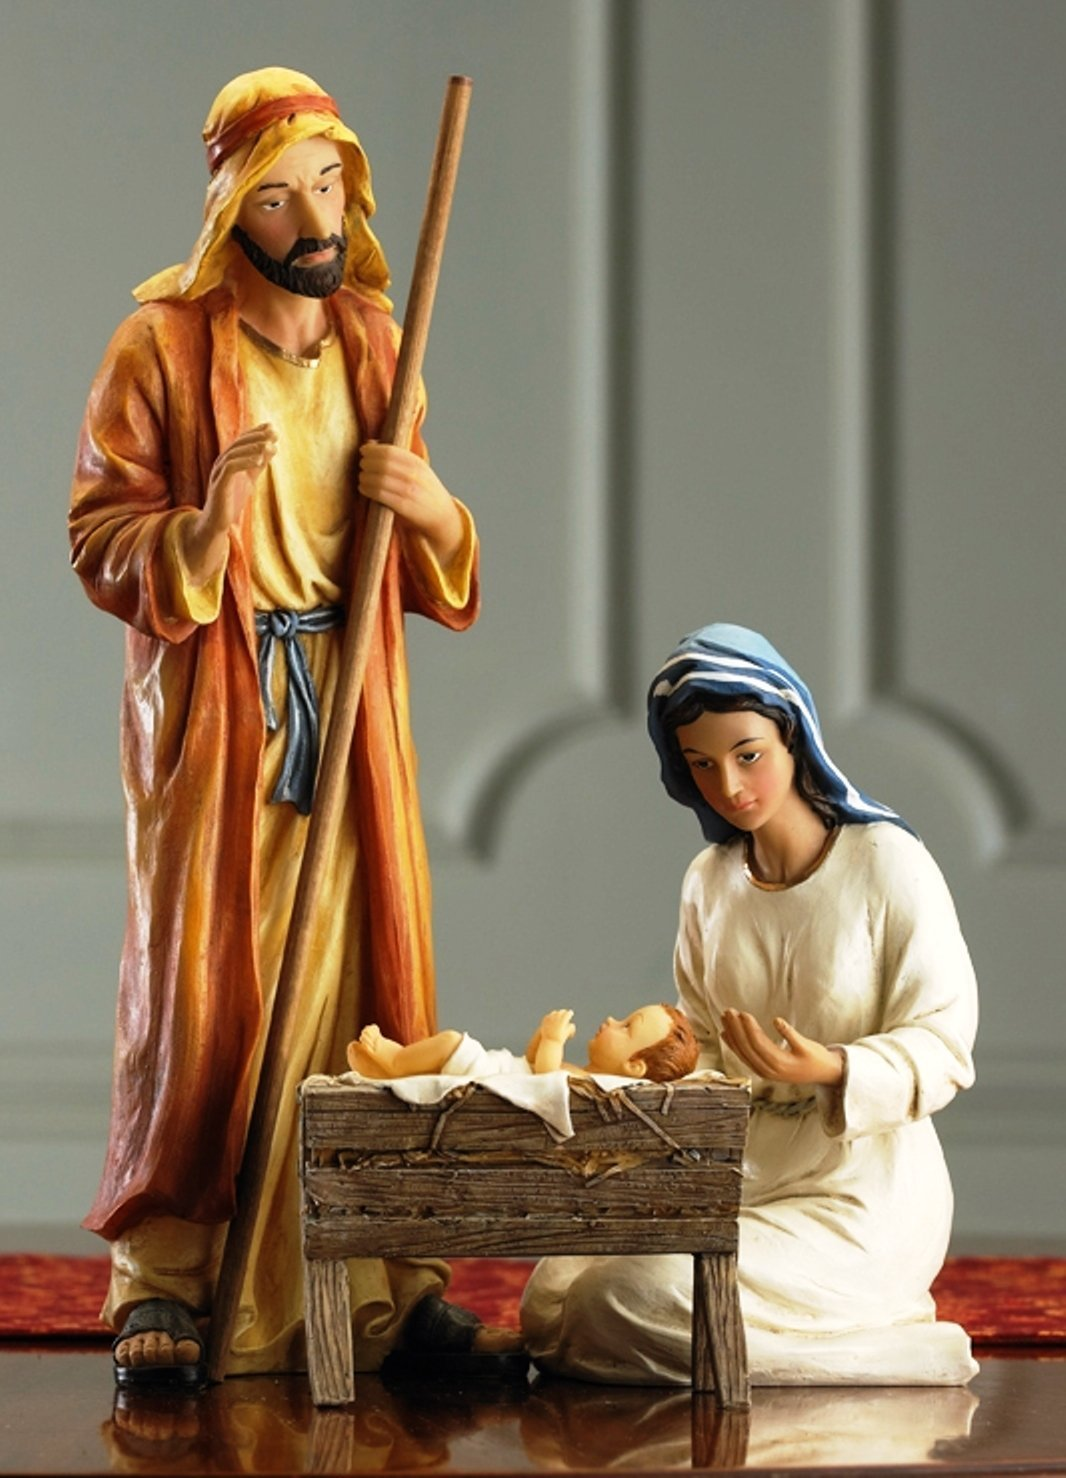 Three Kings Gifts Real Life Nativity Set 14 Inch by Three Kings Gifts (Image #1)